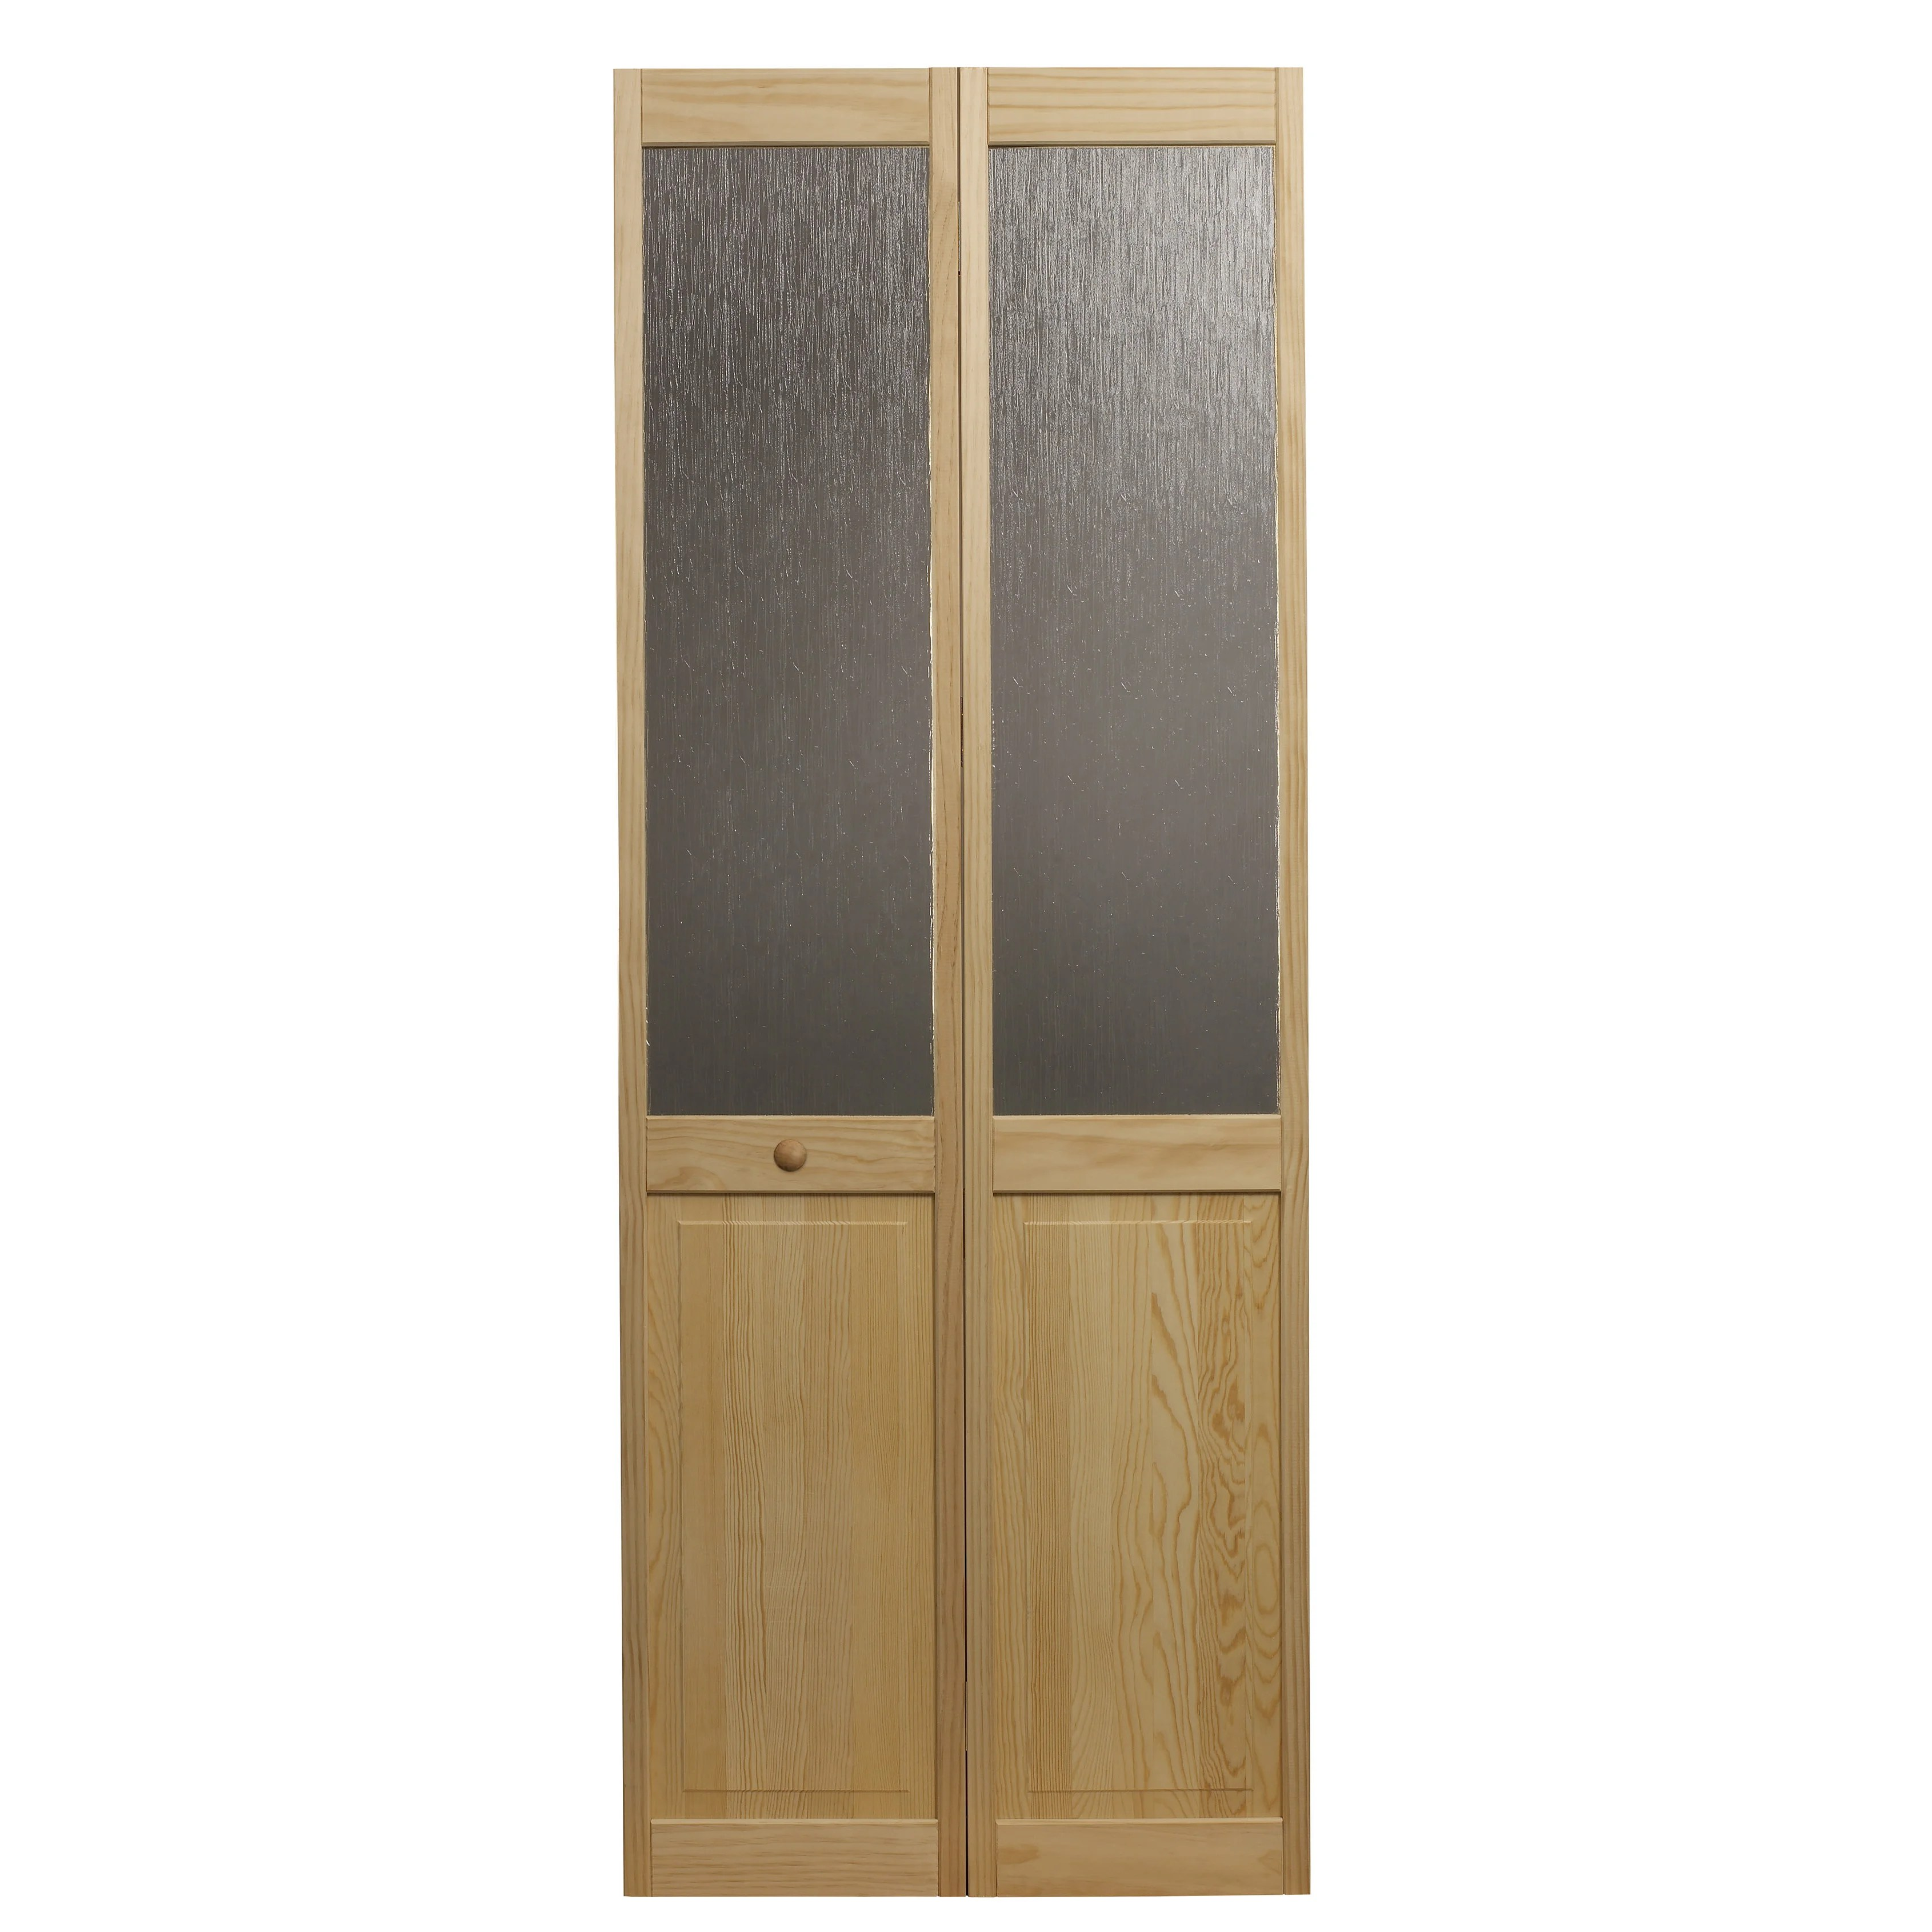 Half Inch Plywood Awc Aspen Half Glass 36 Inch X 80 5 Inch Unfinished Bifold Door